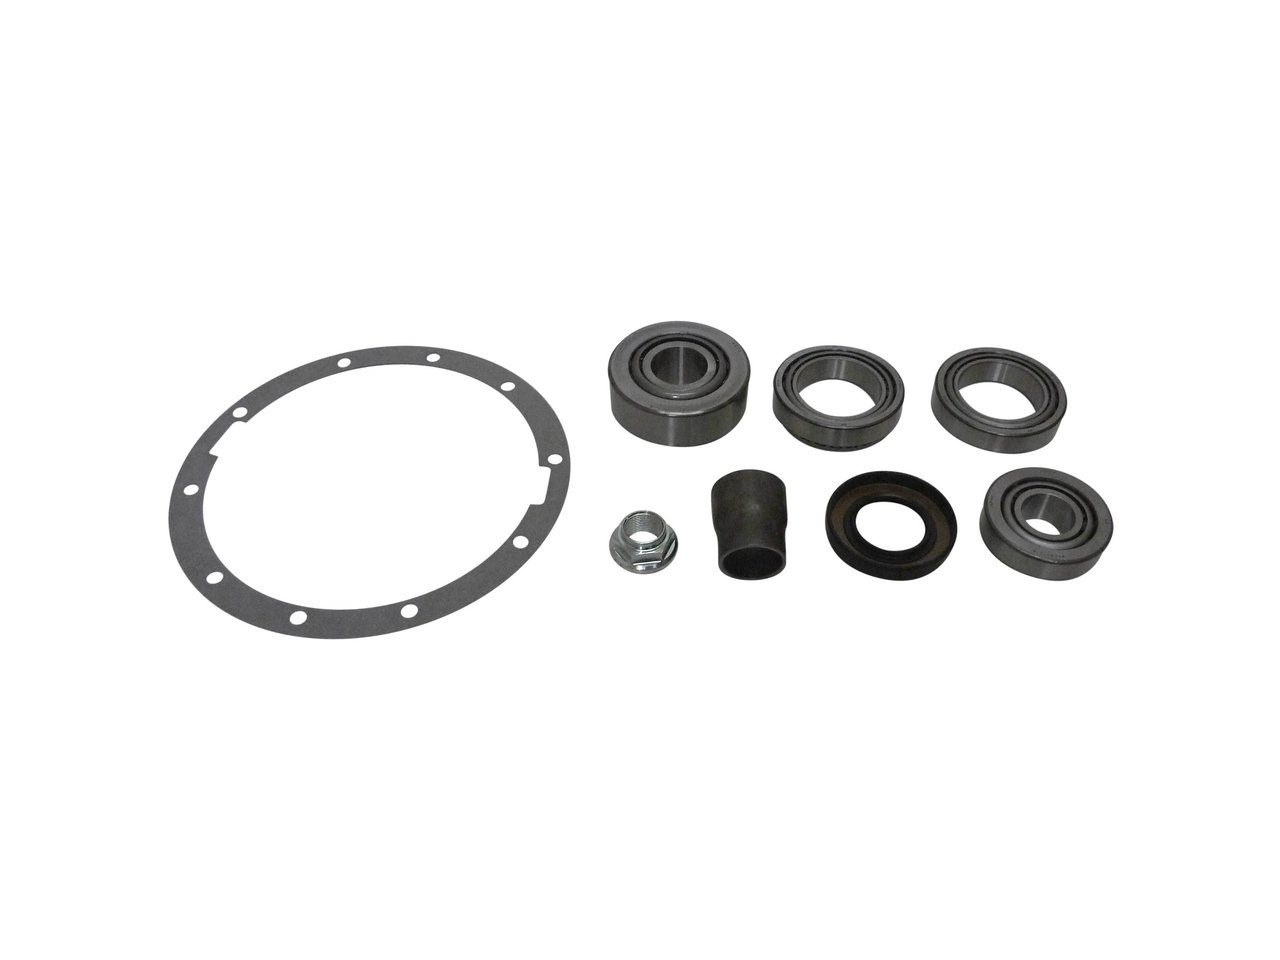 Rear Differential Bearing Kit suitable for Hilux KUN26 GGN25